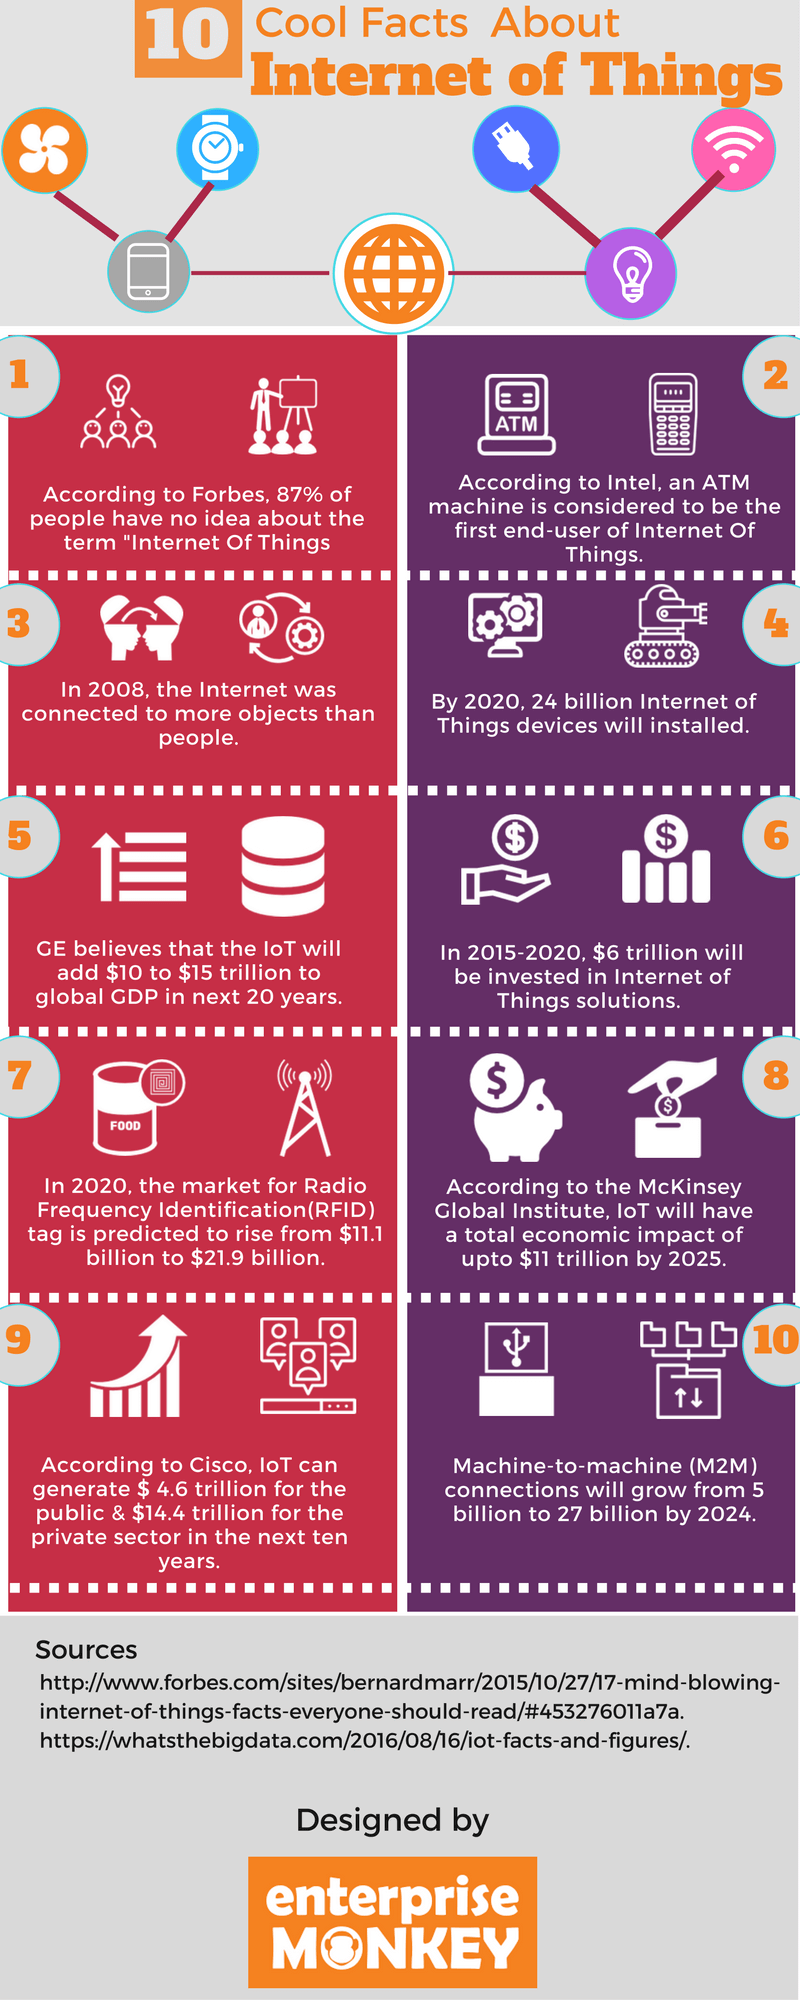 10 Cool Facts About Internet Of Things [Infographic]